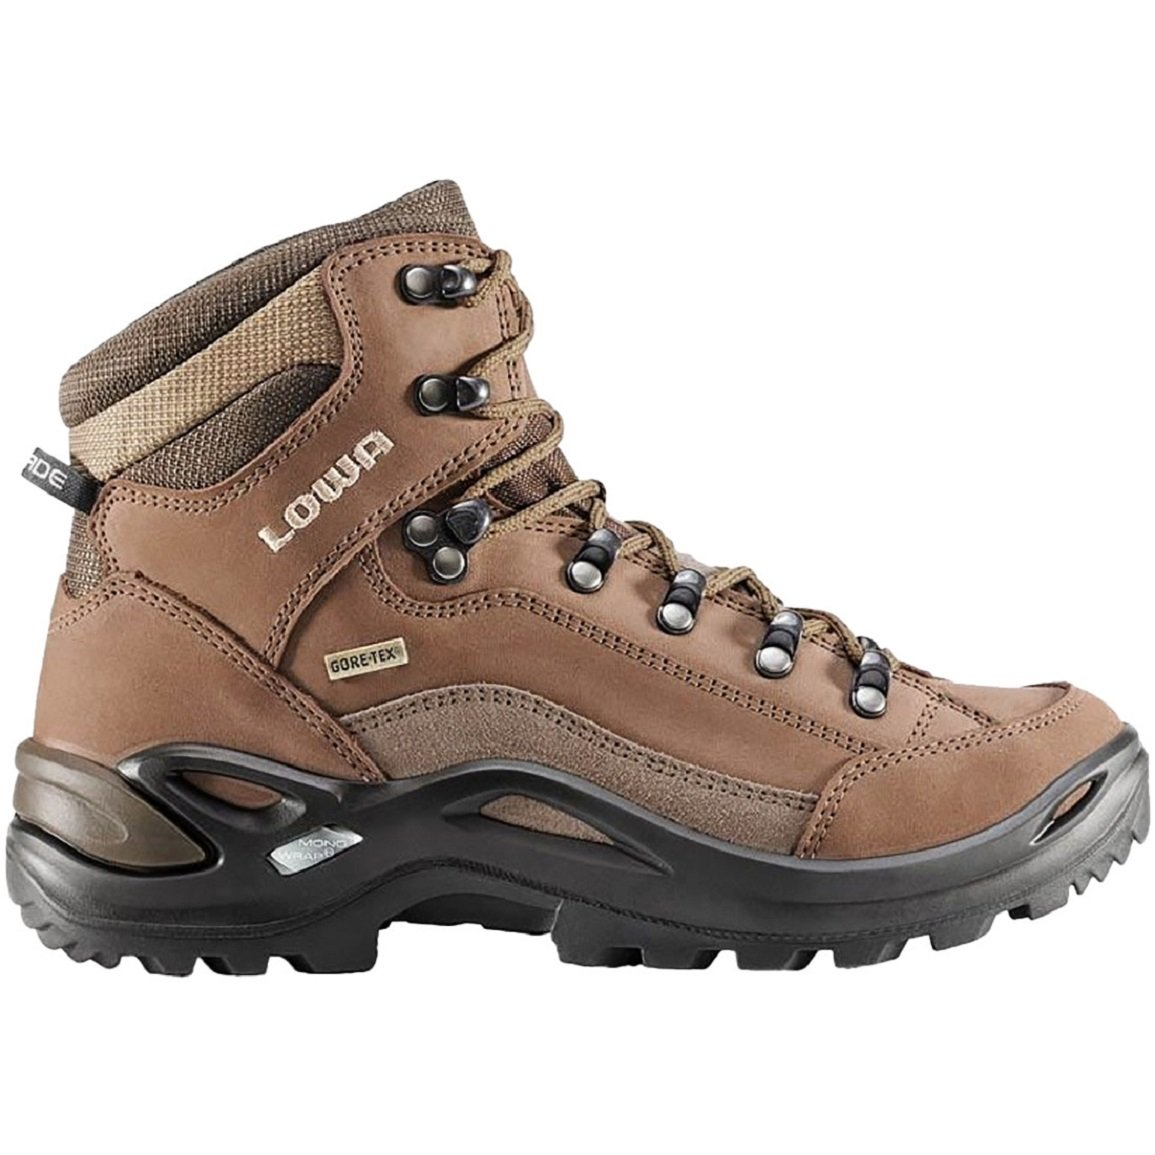 Lowa Womens Renegade GTX Mid Boots Wide Taupe/Sepia Size 7.5 Wide